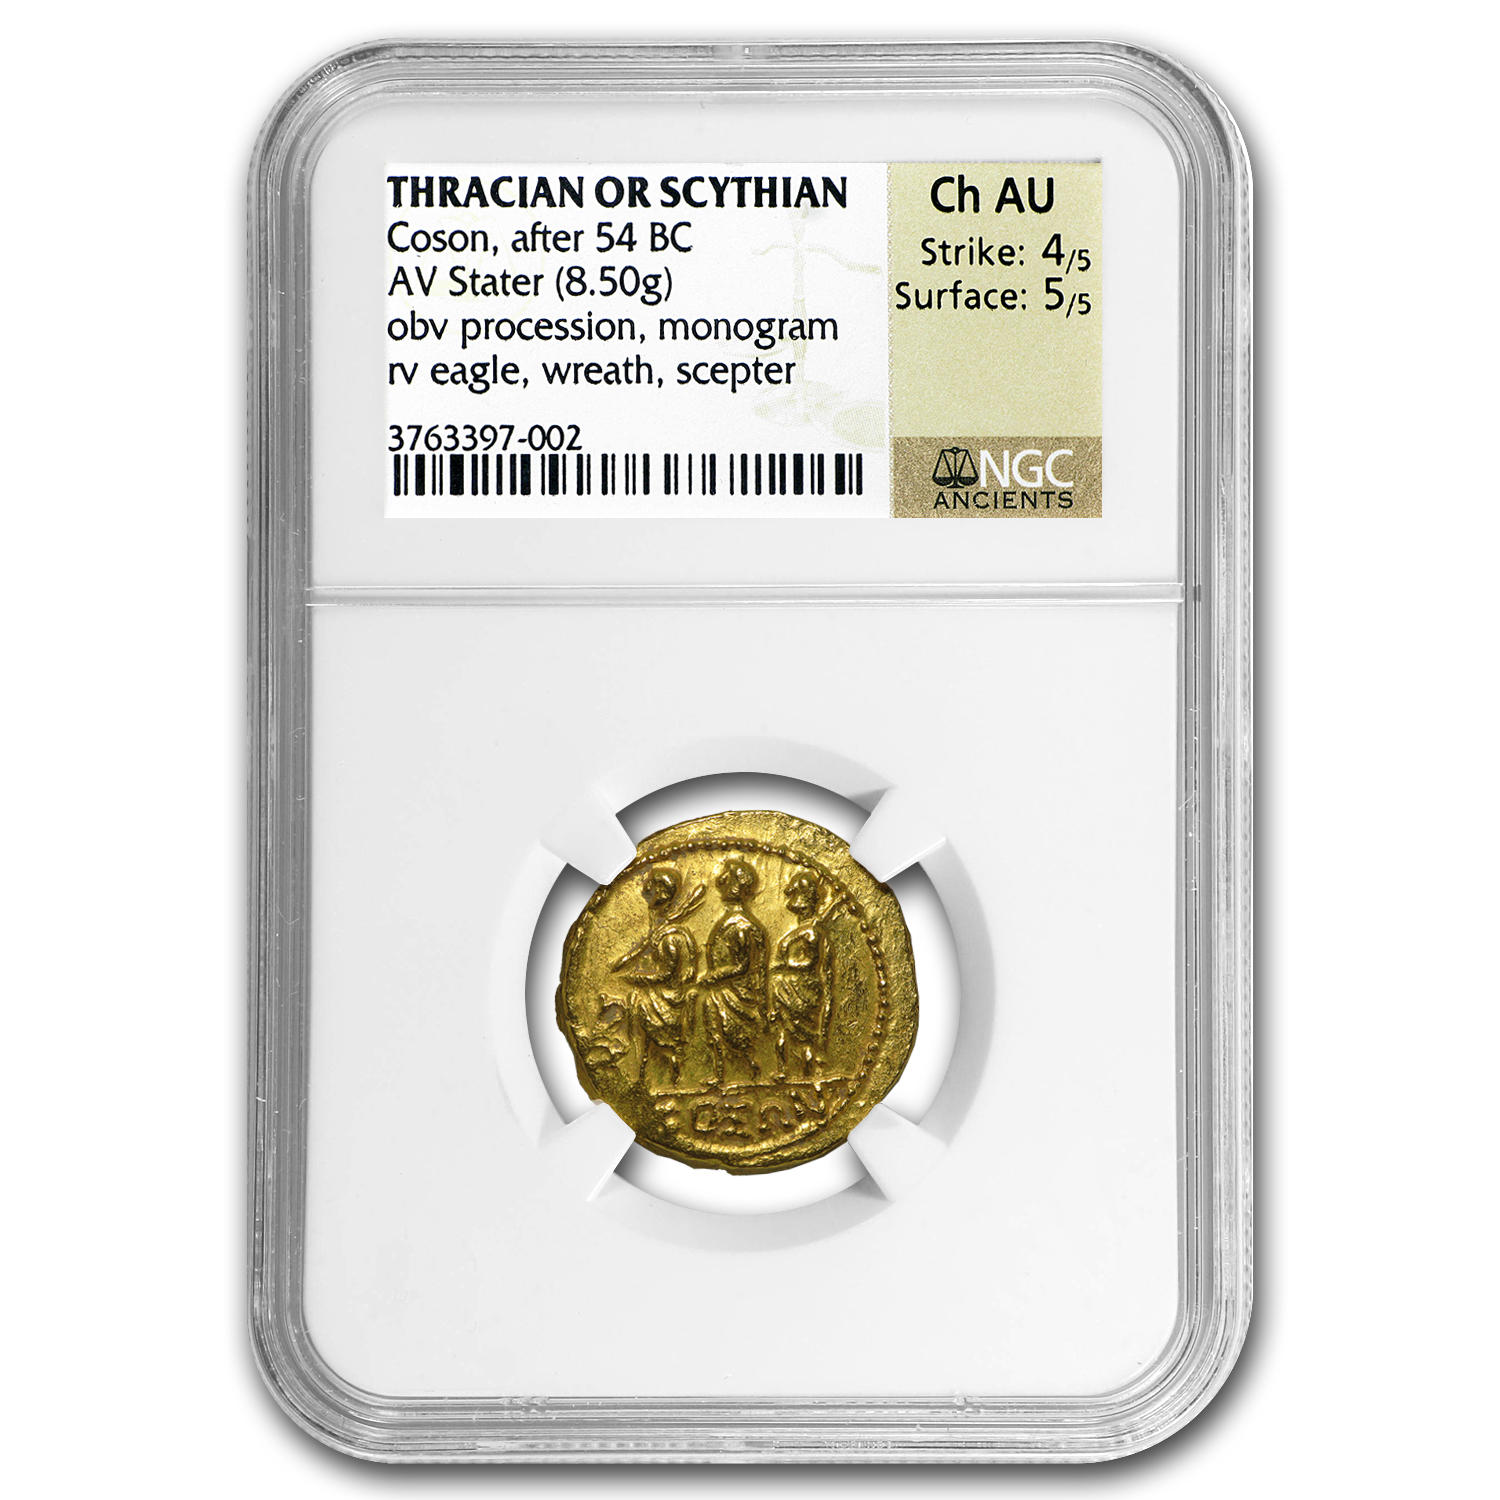 Thracian/Scythian Gold Stater w/Monogram (1st Cent. BC) CH AU NGC